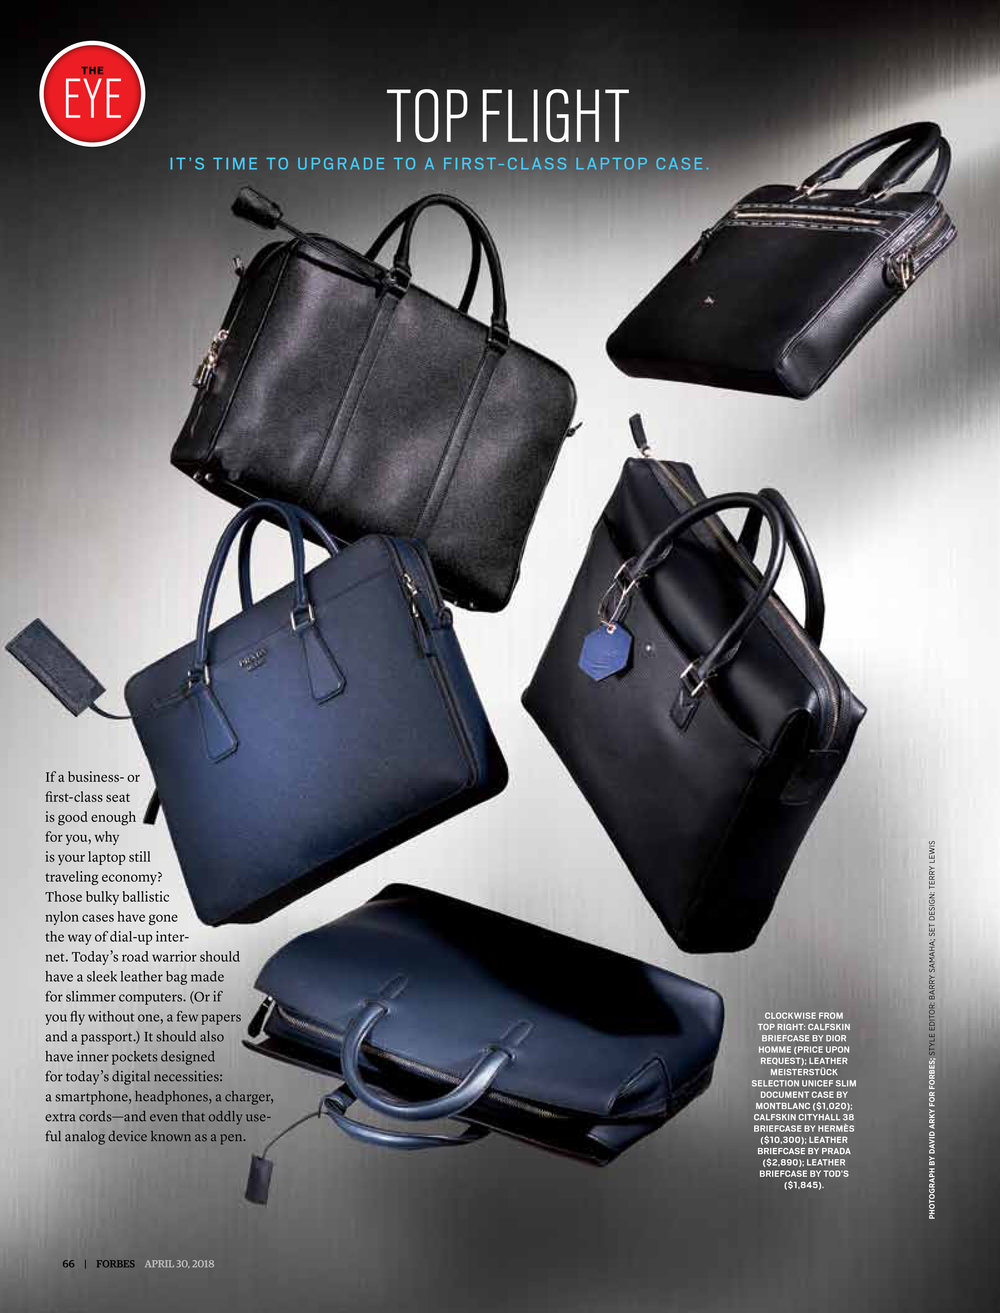 Top Flight: First Class Laptop Bags